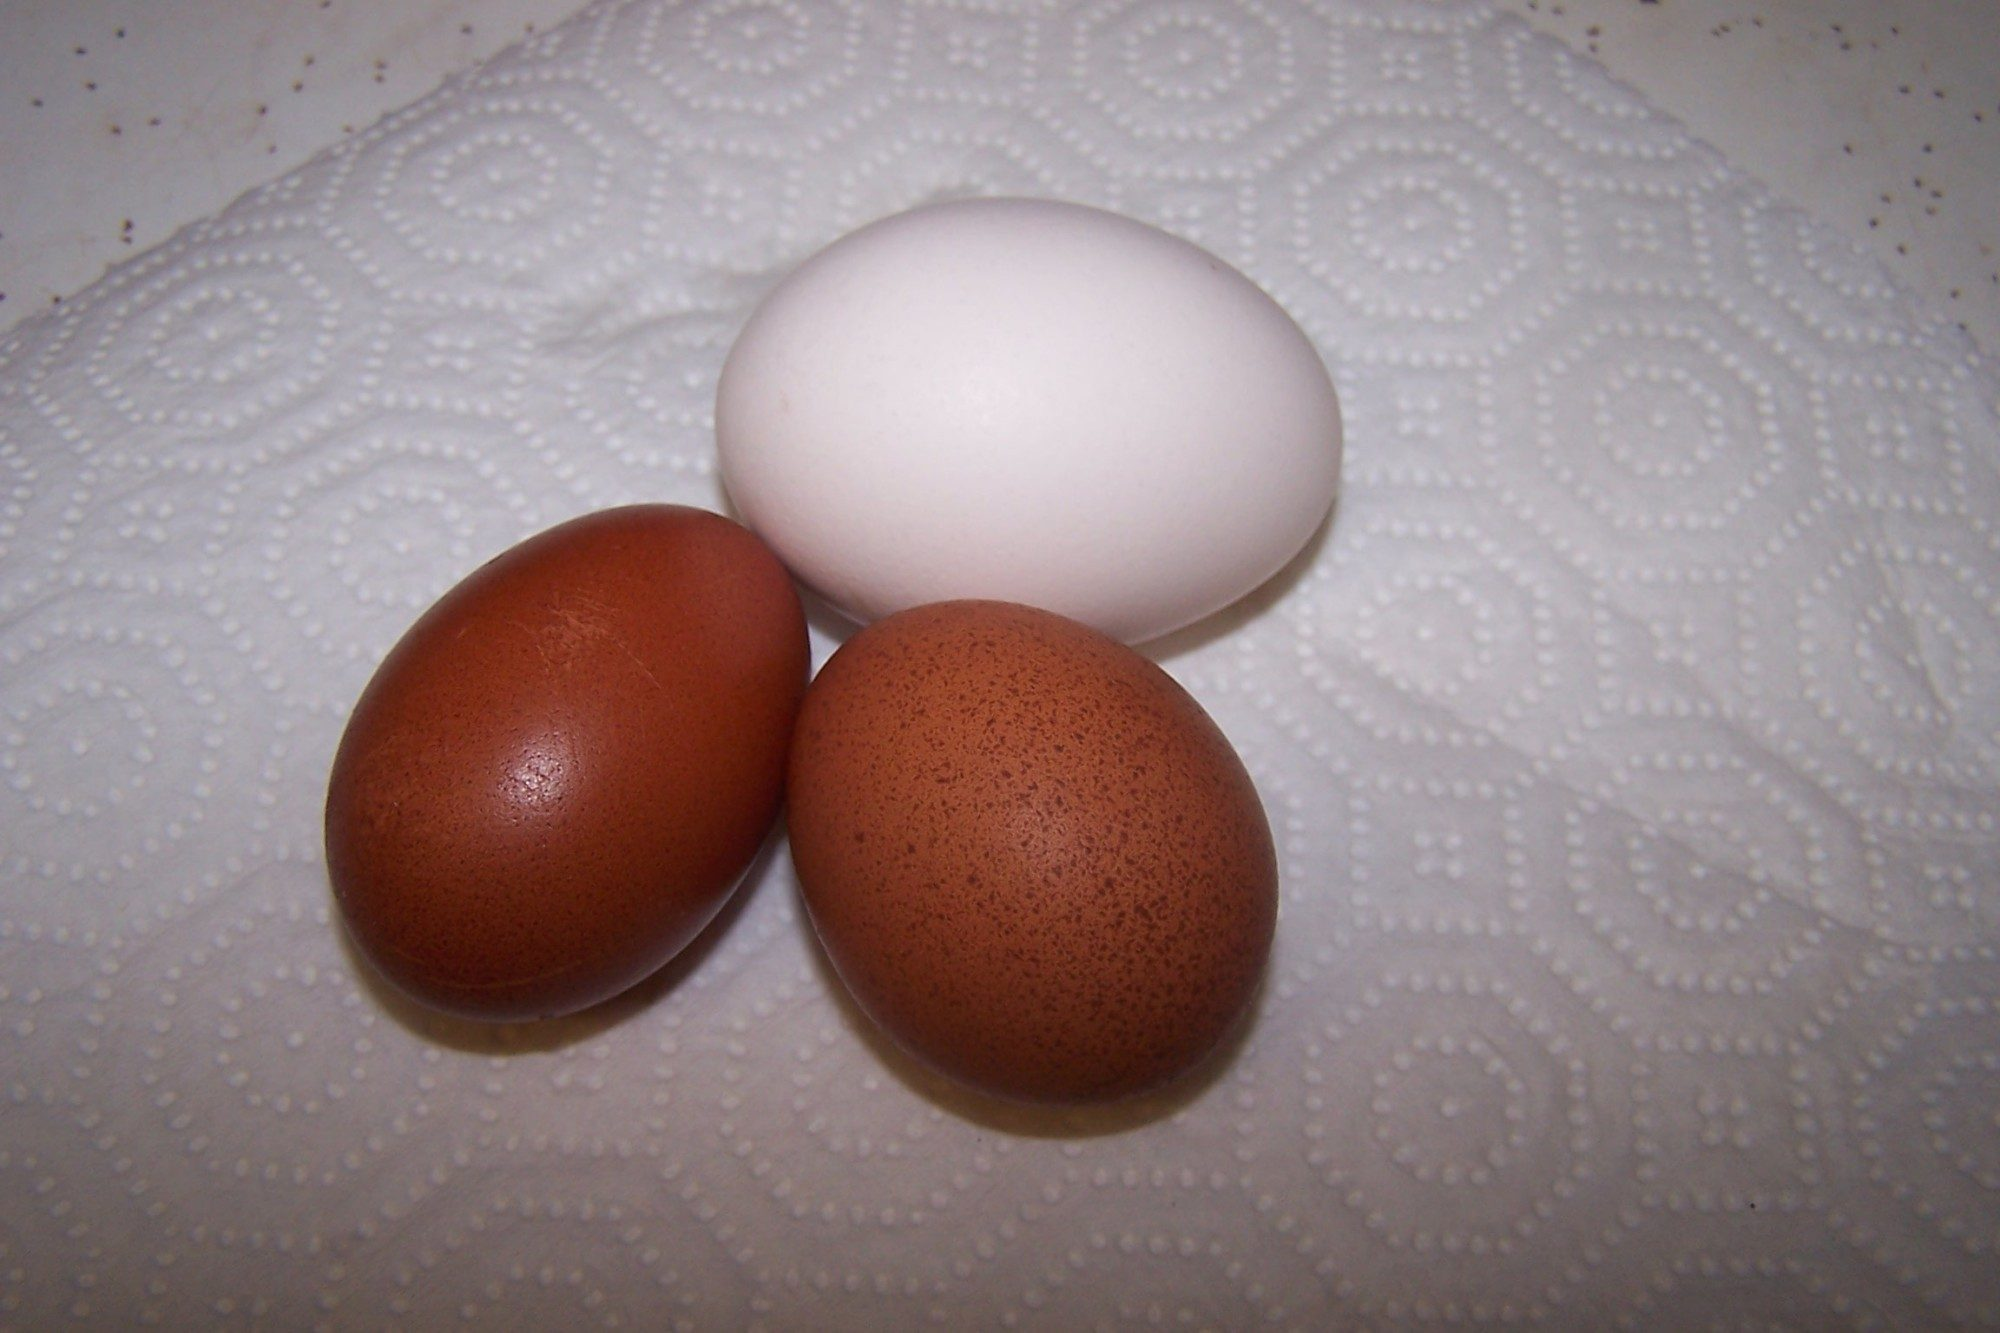 The pullet Marans eggs...about a 5 and 4 respectively on the Marans scale